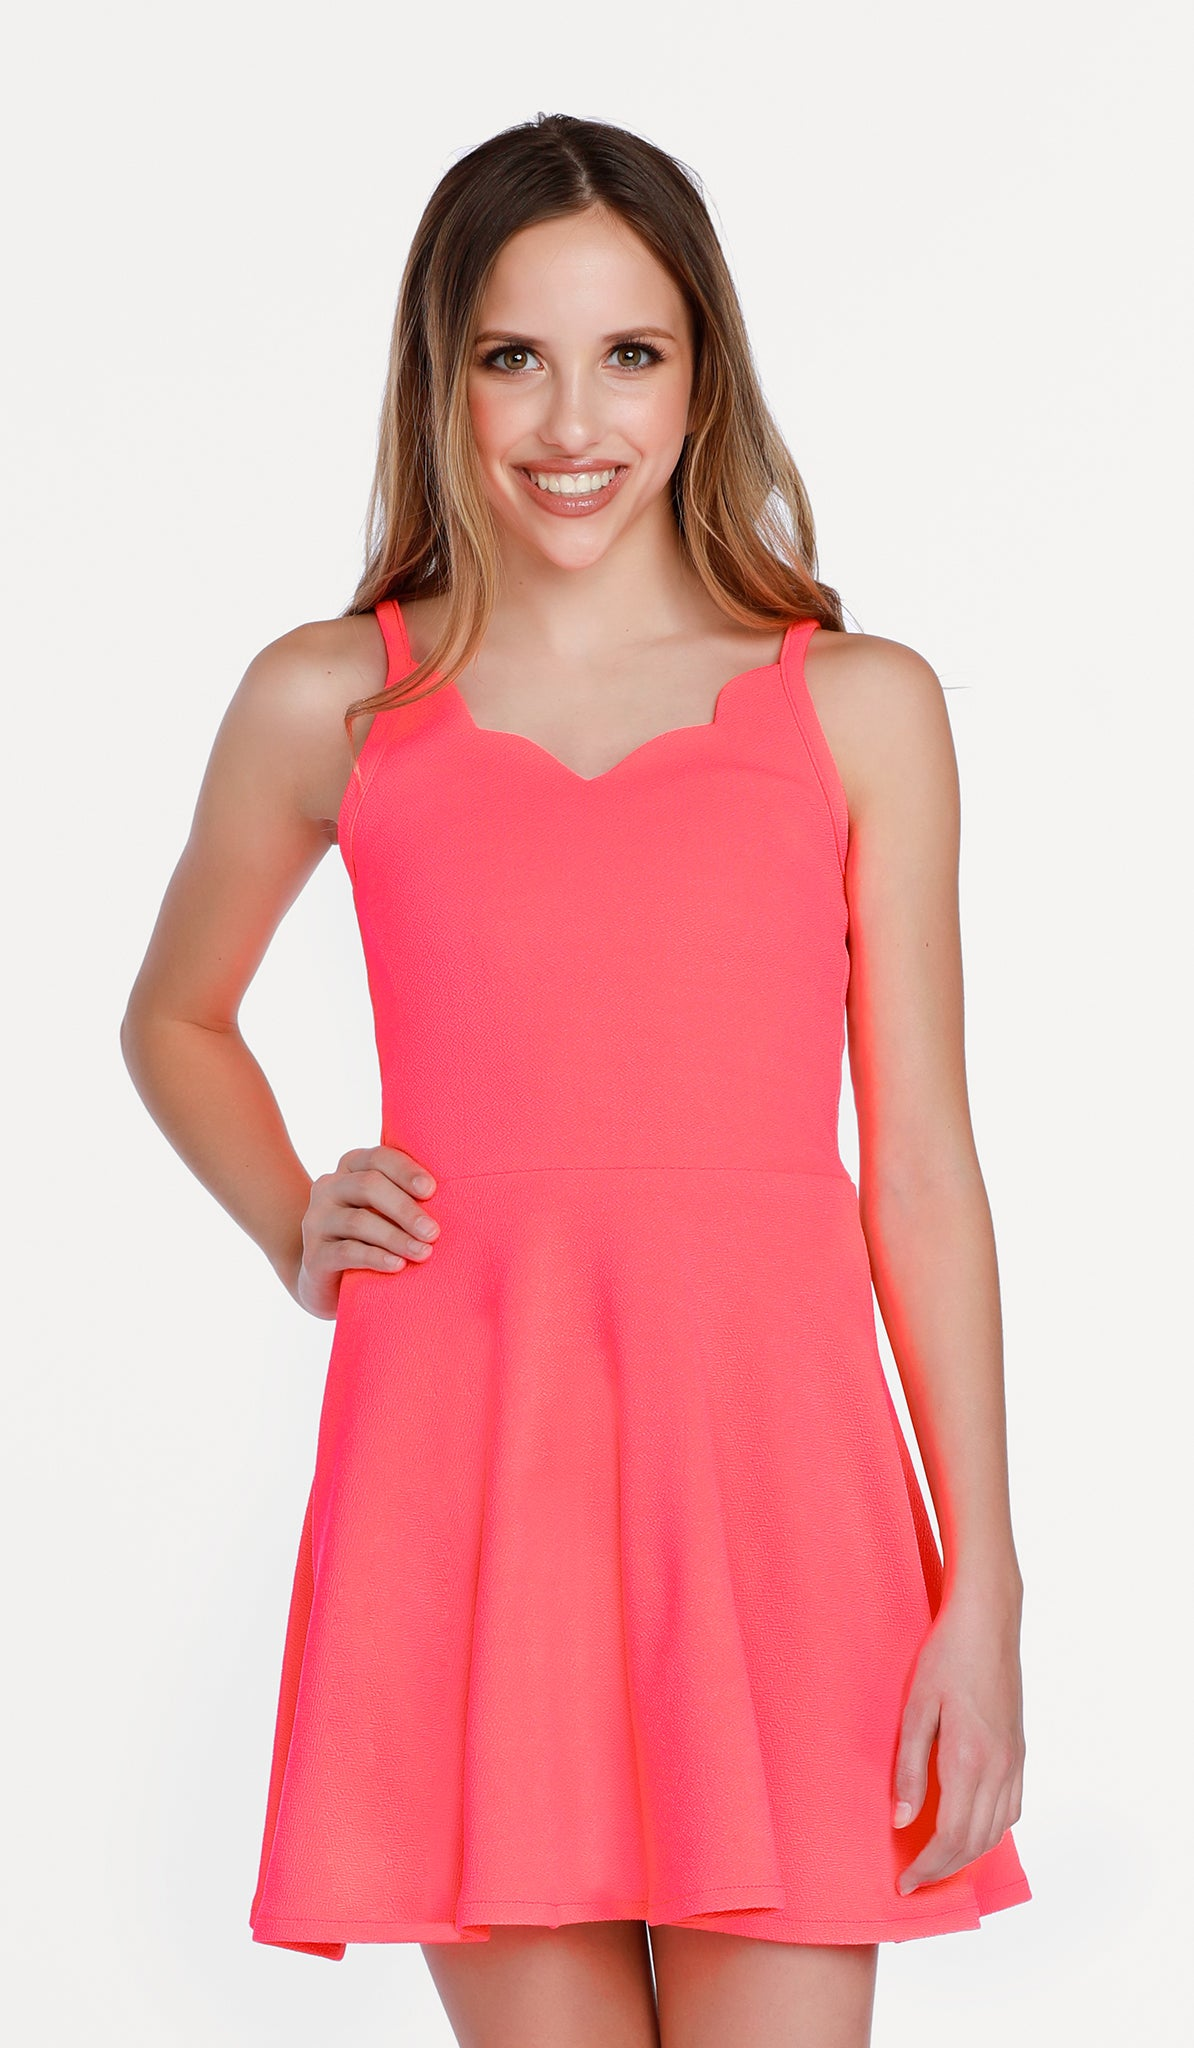 The Sally Miller Laynie Dress in Neon Coral - Neon Coral textured stretch knit fit and flare dress with scallop detail